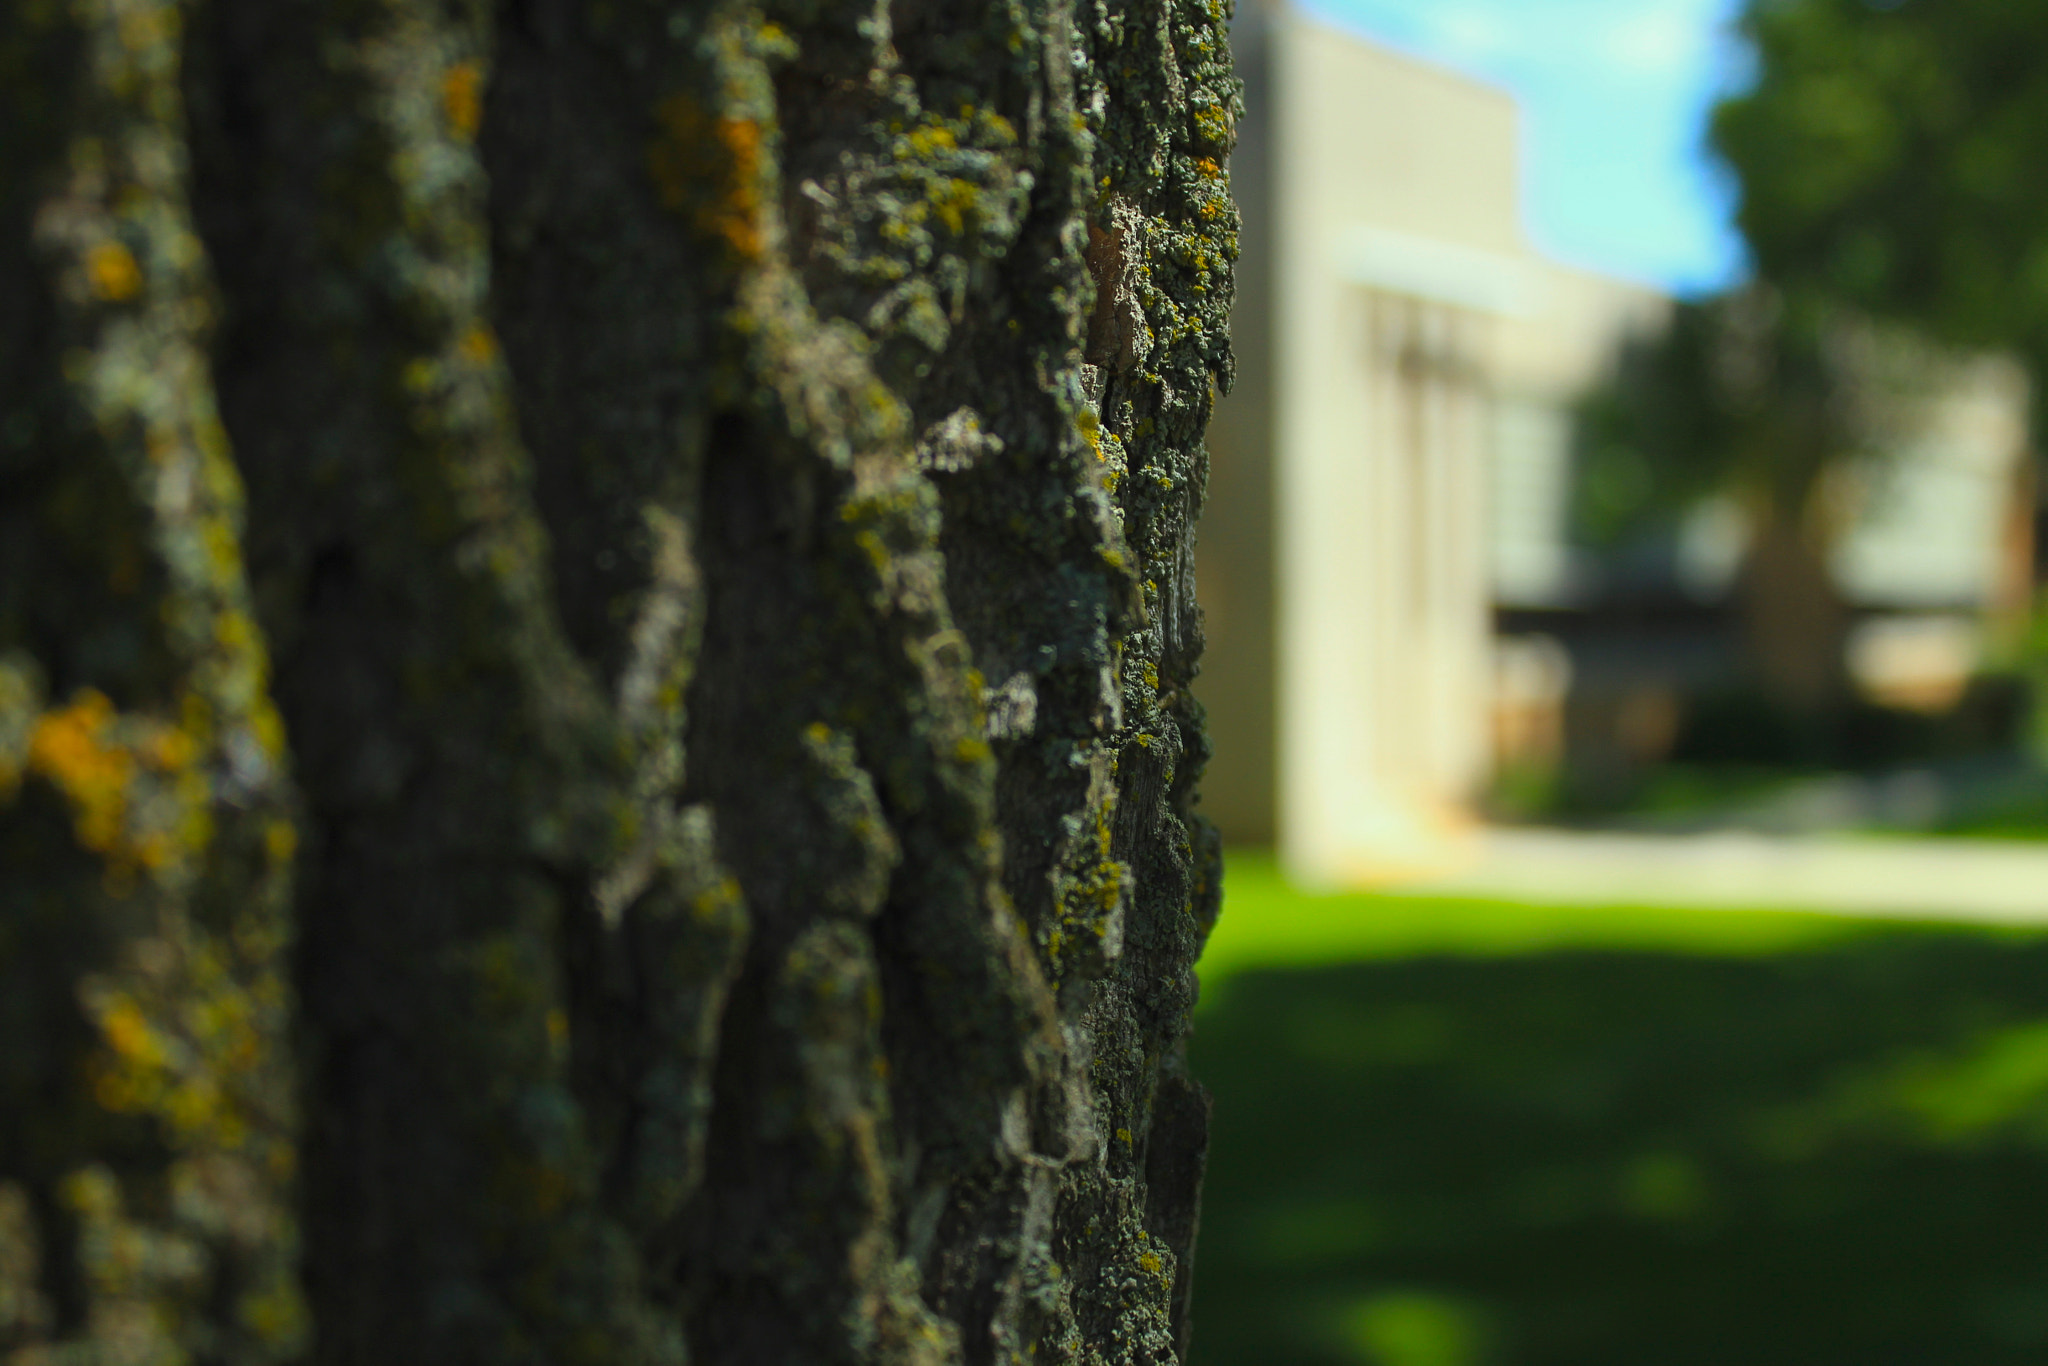 Photograph Mossy Bark by Michael Steeber on 500px